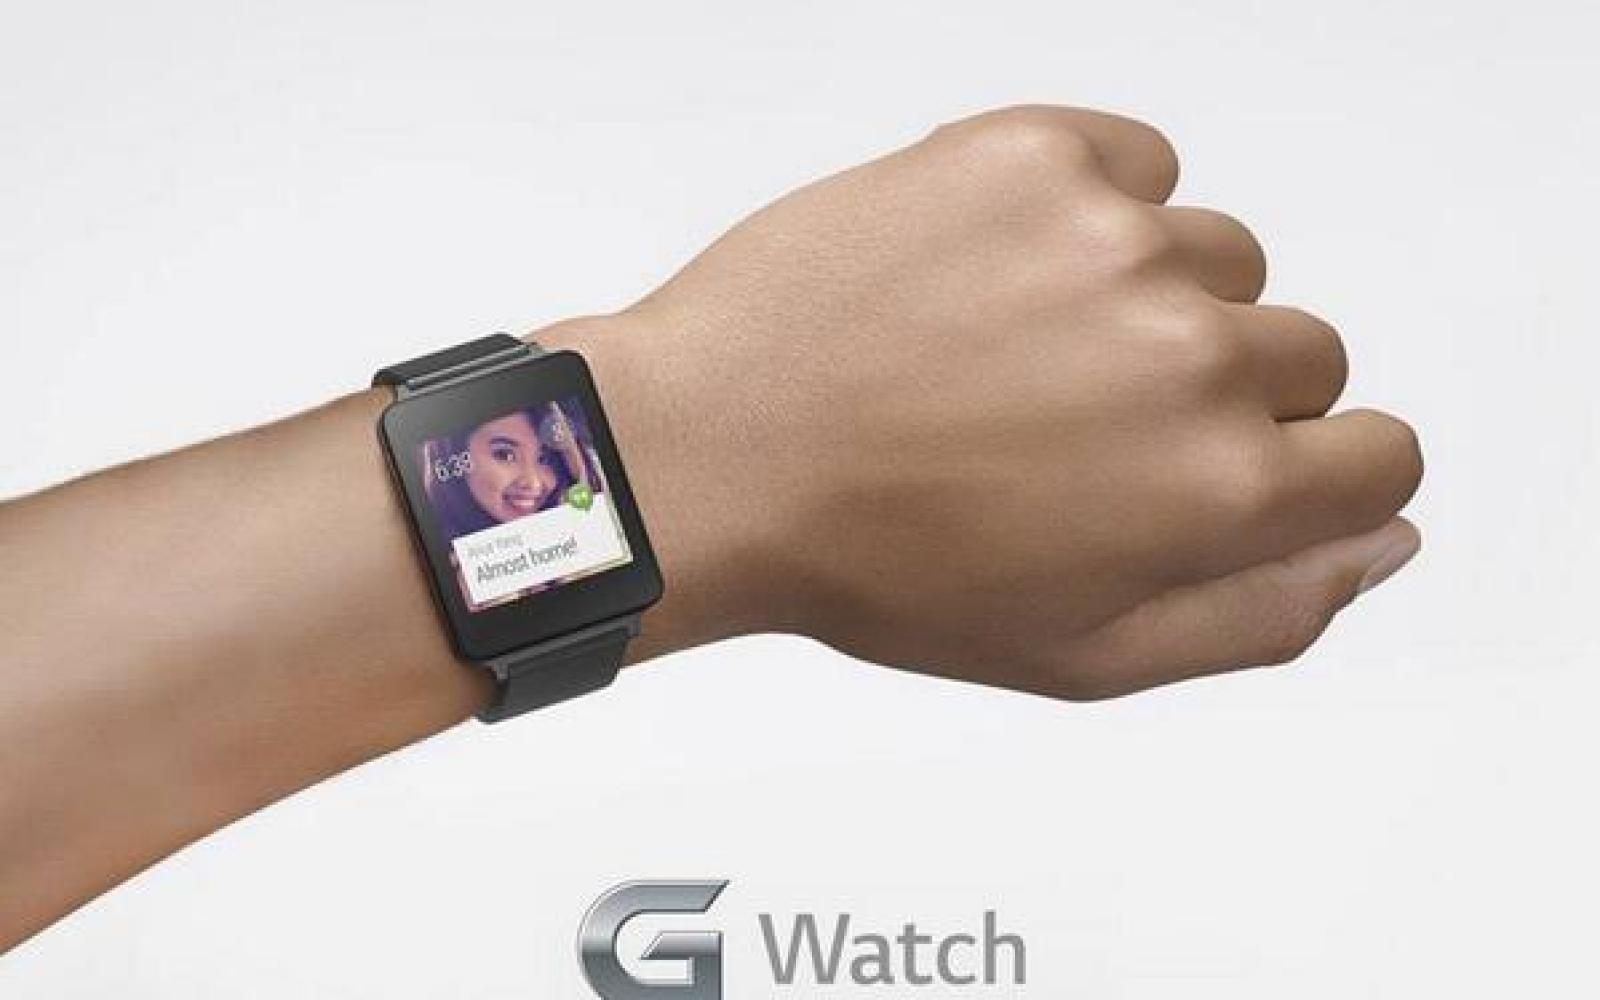 LG shows off its upcoming 'G Watch' in new image, 240ppi 1.65inch screen rumored